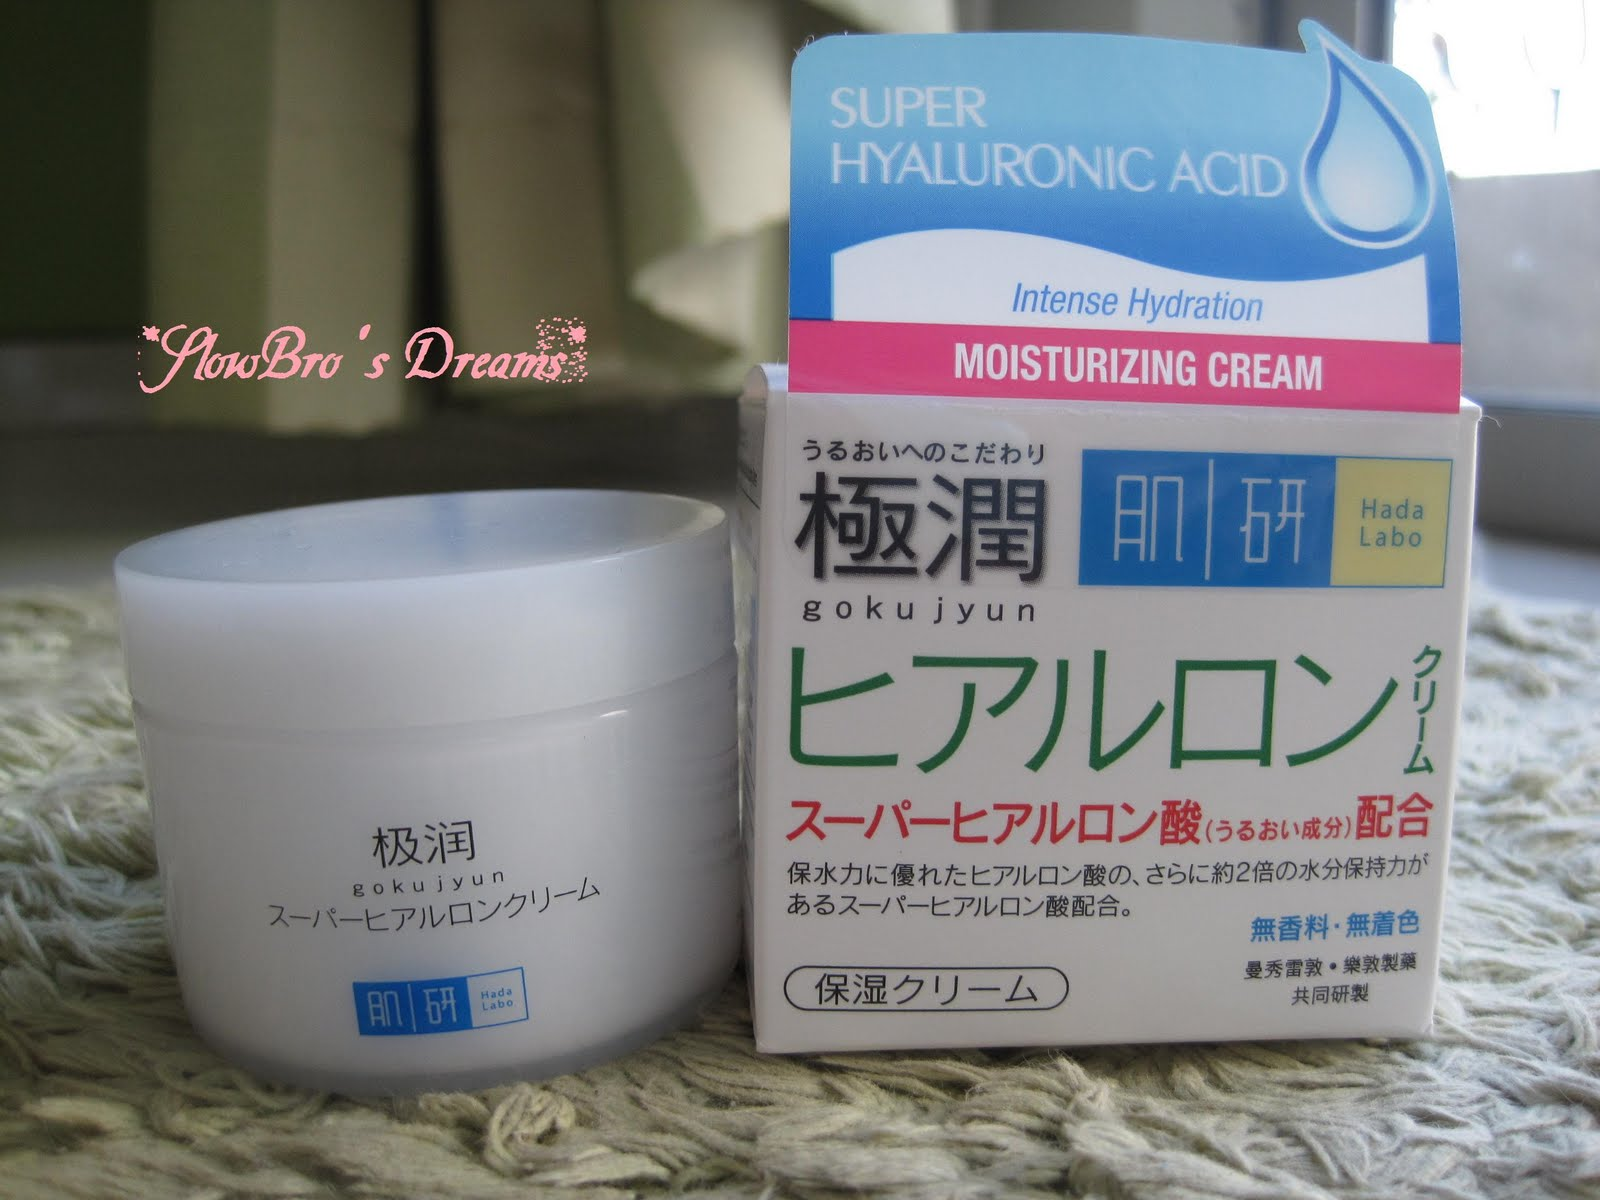 Review Hada Labo Super Hyaluronic Acid Moisturizing Cream Hydrating Moisturizer